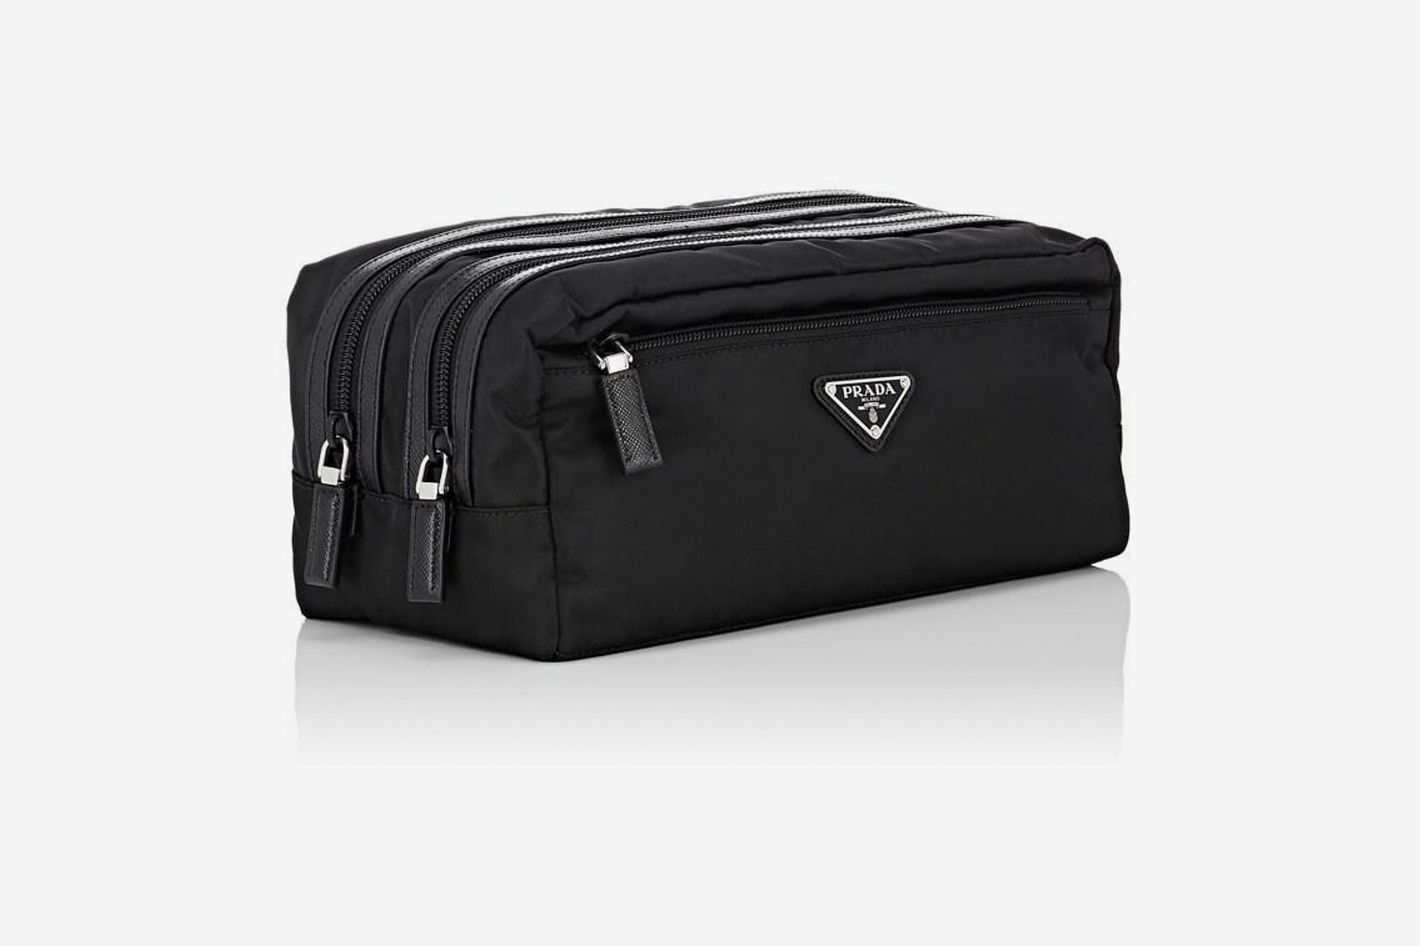 Prada Two-Compartment Dopp Kit